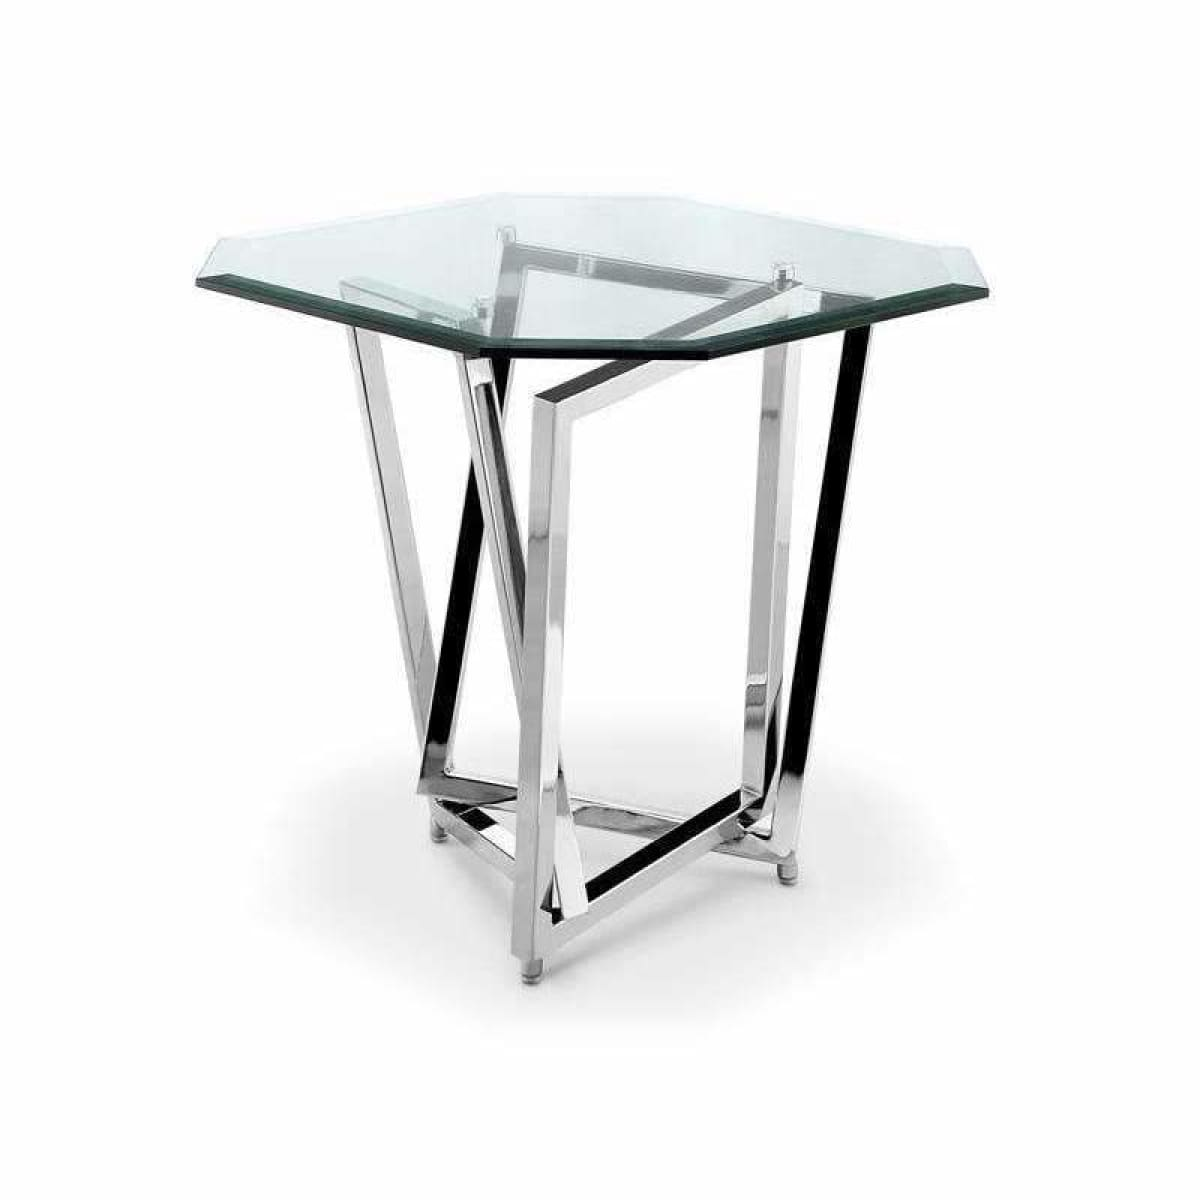 Lenox SquareOctoganal End Table - END TABLE/SIDE TABLE